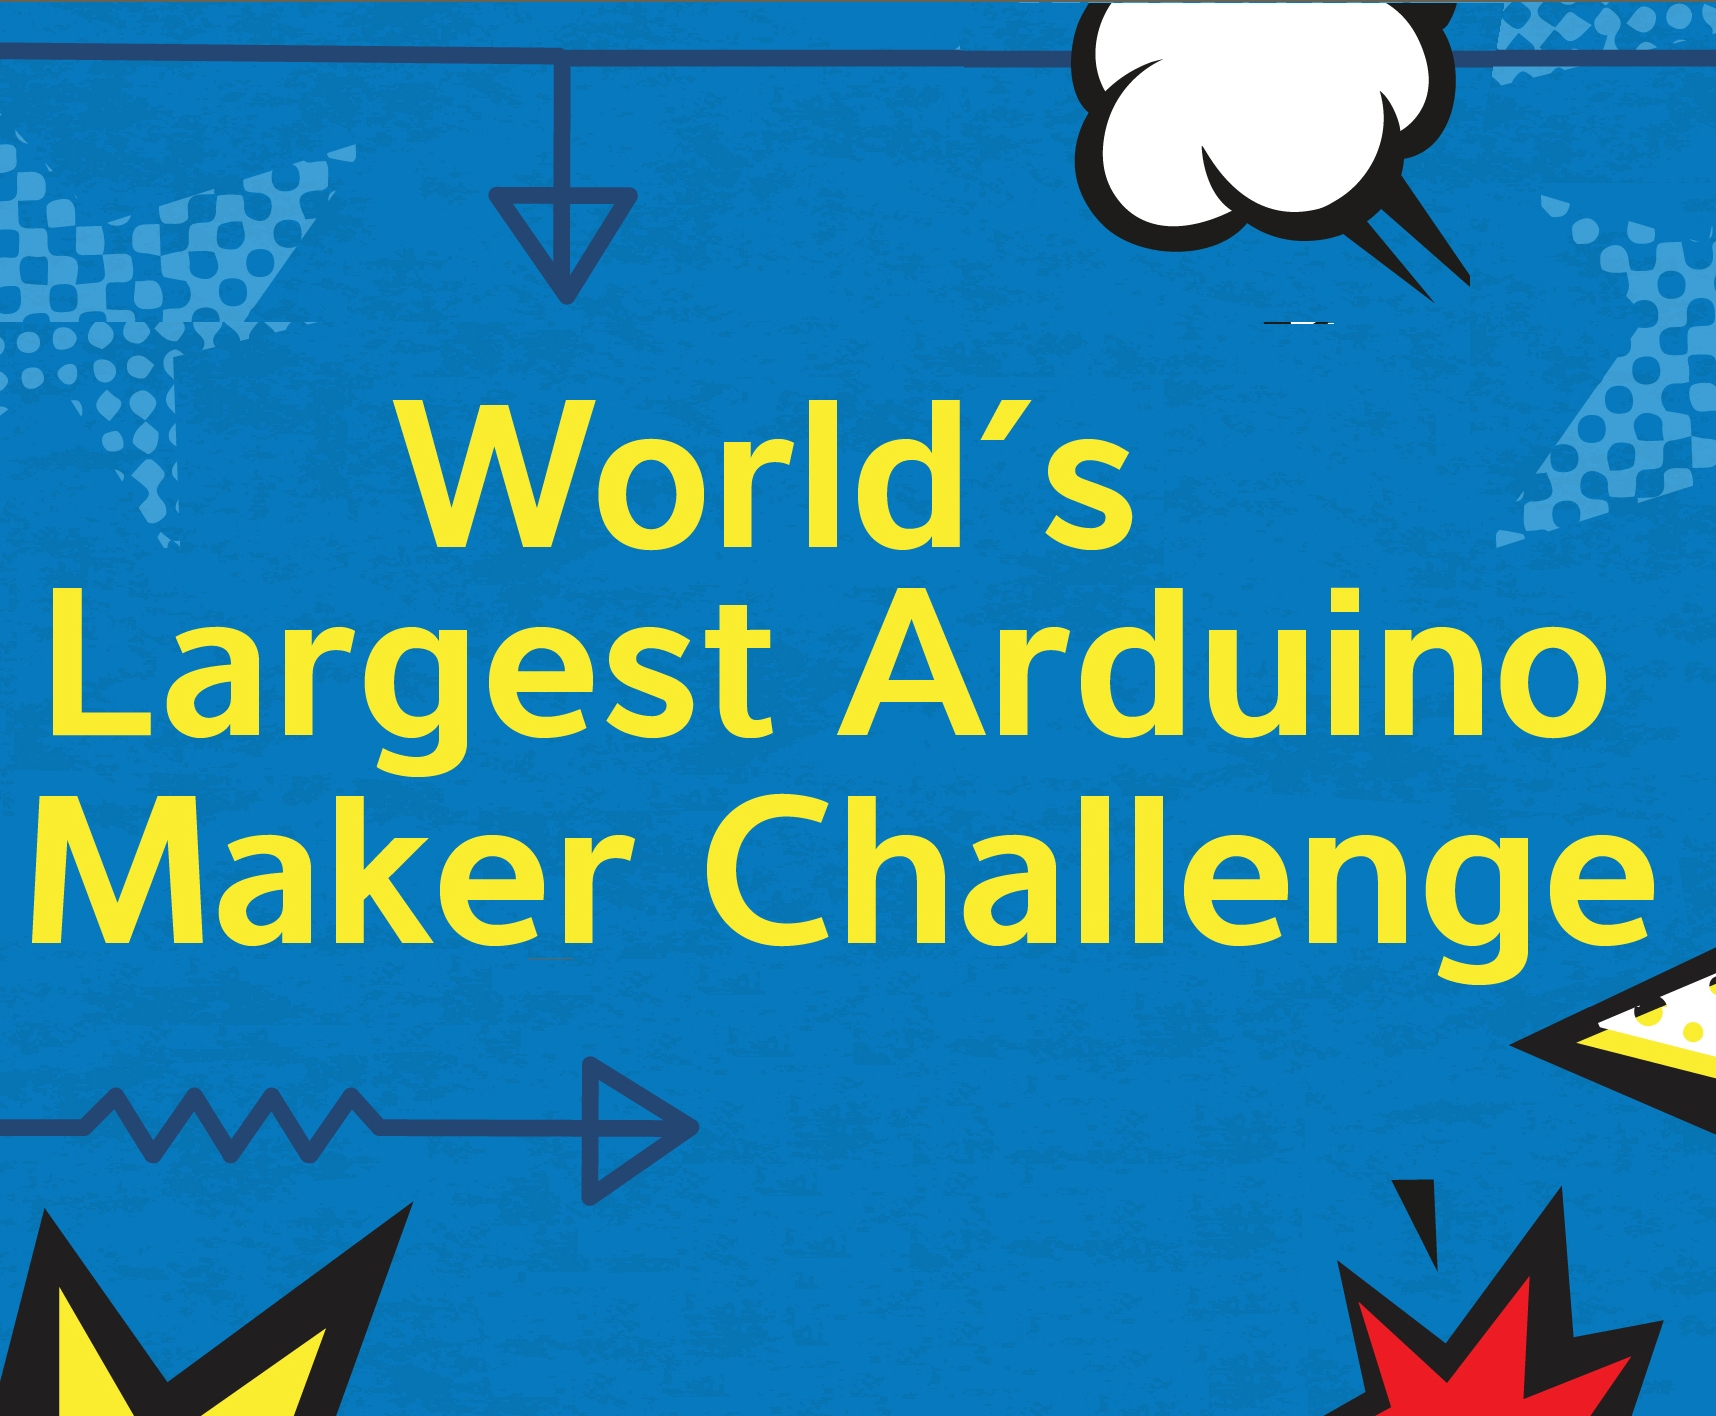 Mega contest for Arduino makers